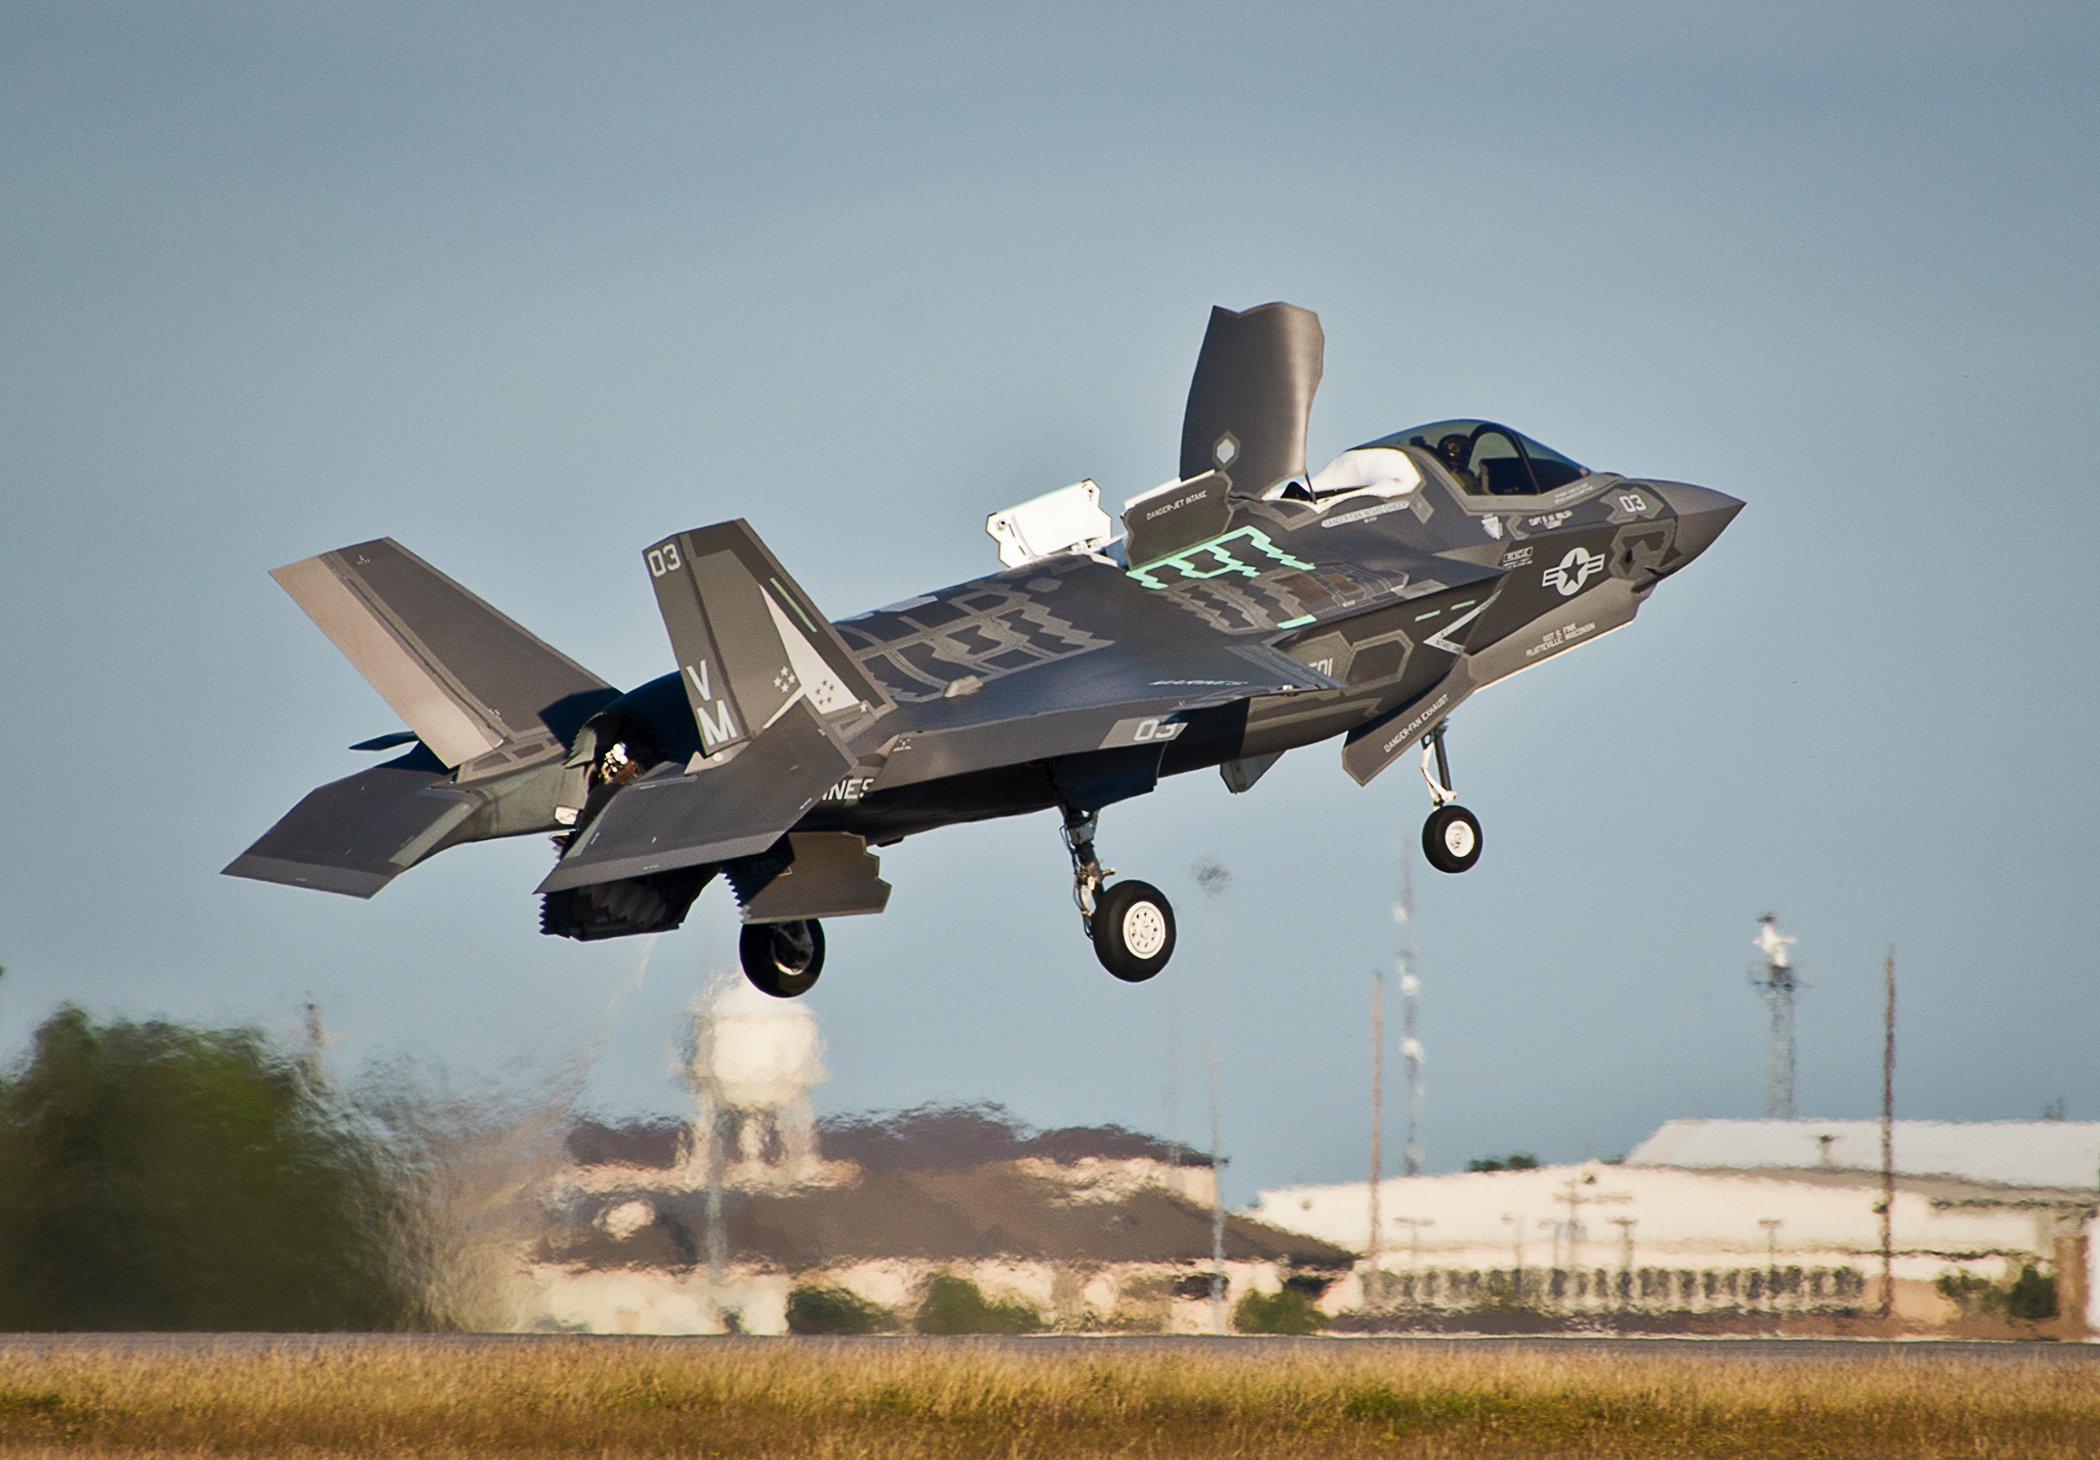 A Marine F-35B joint strike fighter lifts off from the runway during the first short take-off and vertical landing mission at Eglin Air Force Base, Fla. on Oct. 25 2013. US Marine Corps Photo